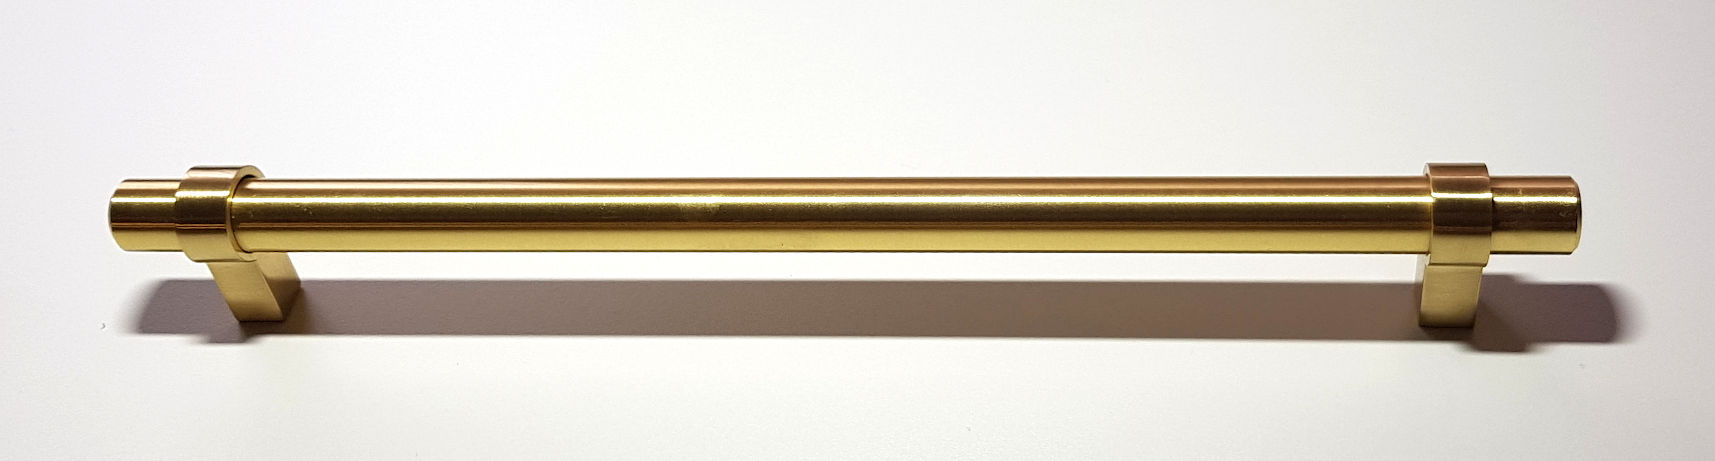 BRUSHED BRASS LEGATO HANDLE 265MM (224MM CENTRES)